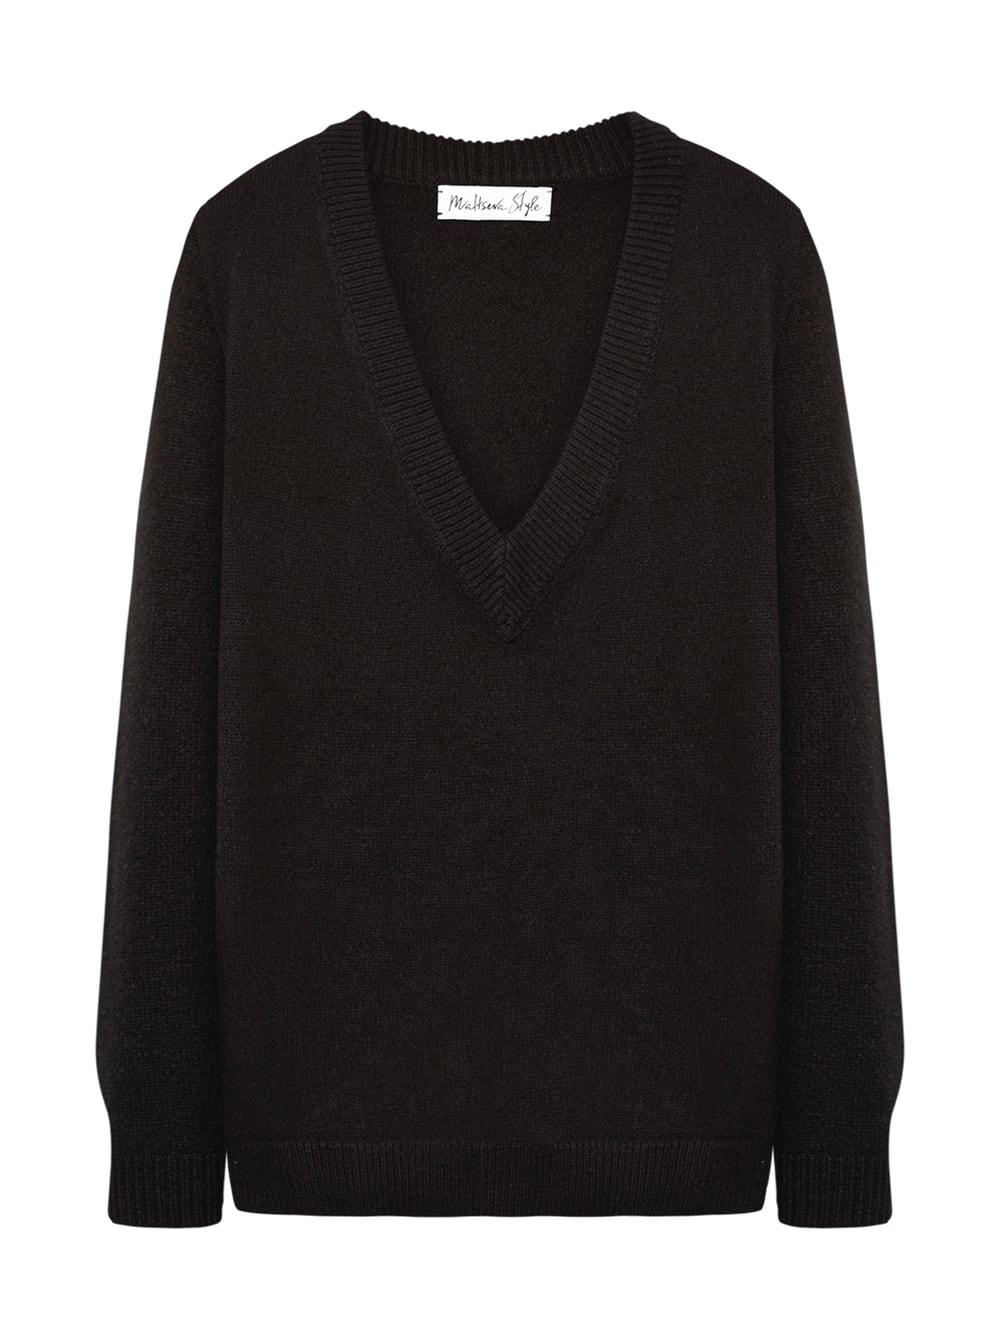 картинка V-NECK SWEATER BLACK - Maltseva Style